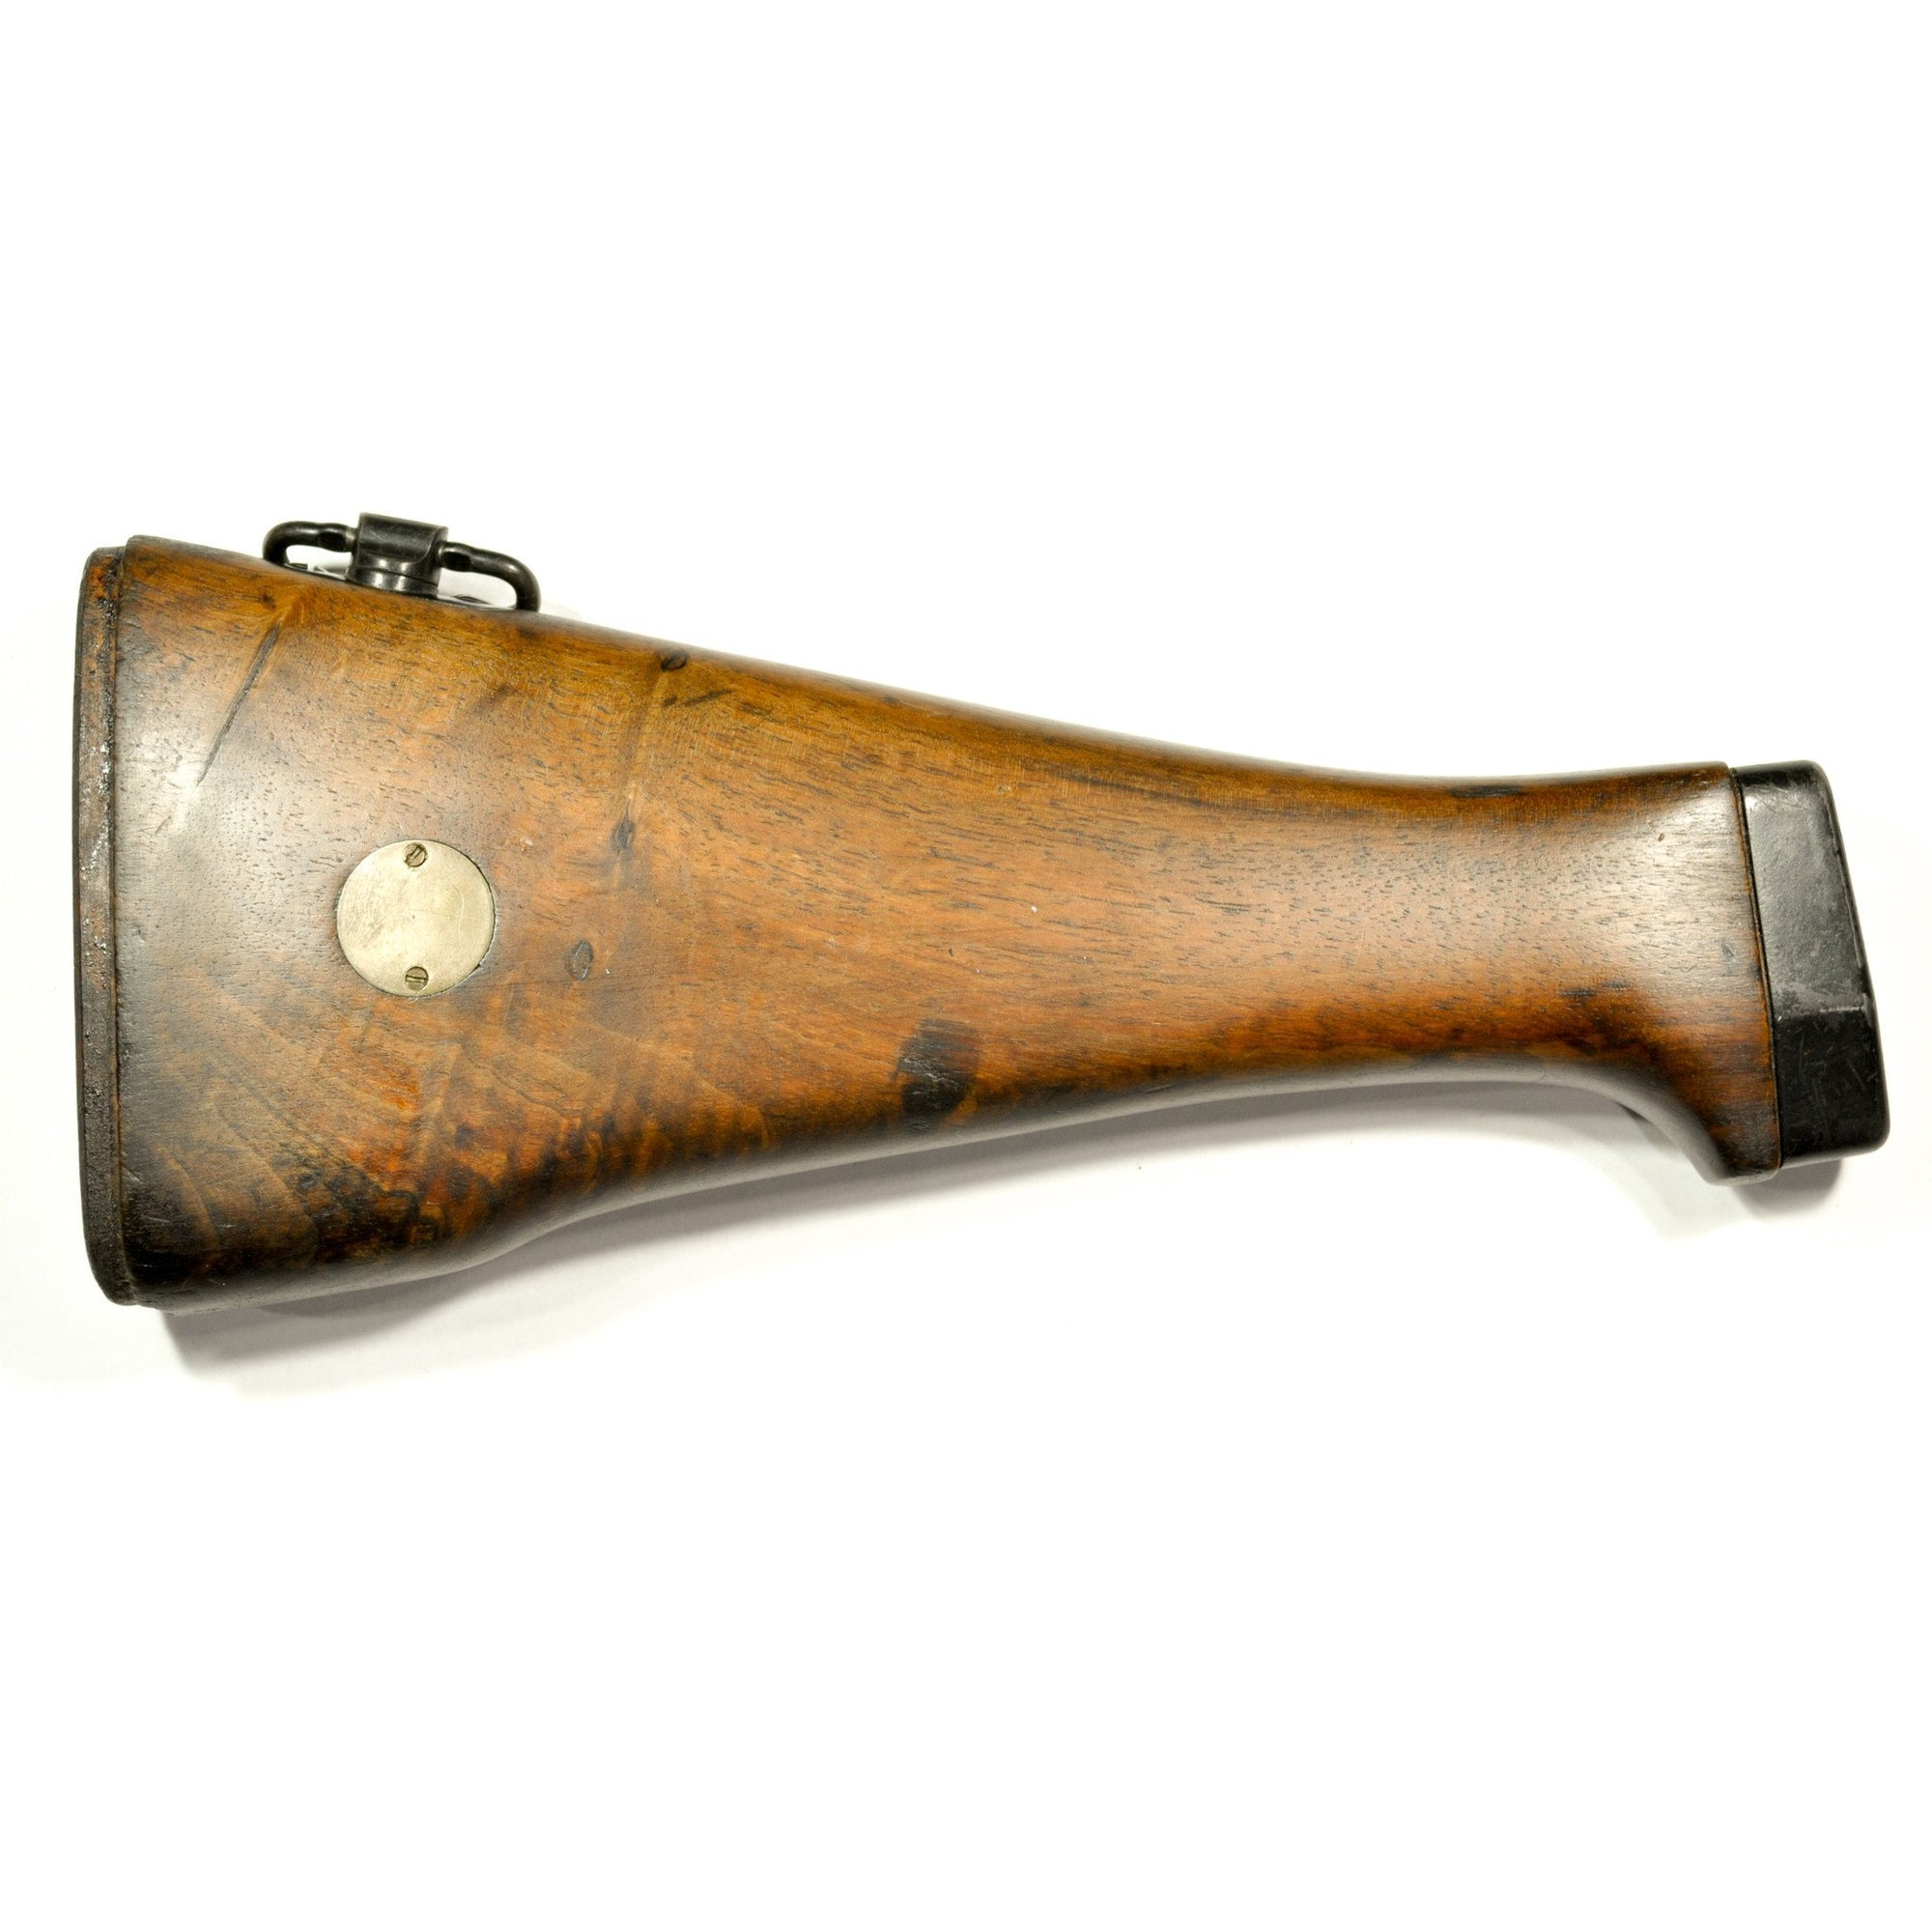 FN L1A1 Walnut Butt Stock with Front Nylon Piece & Rear Swivel,Previously Owned Stocks and Fore-Ends- Canada Brass